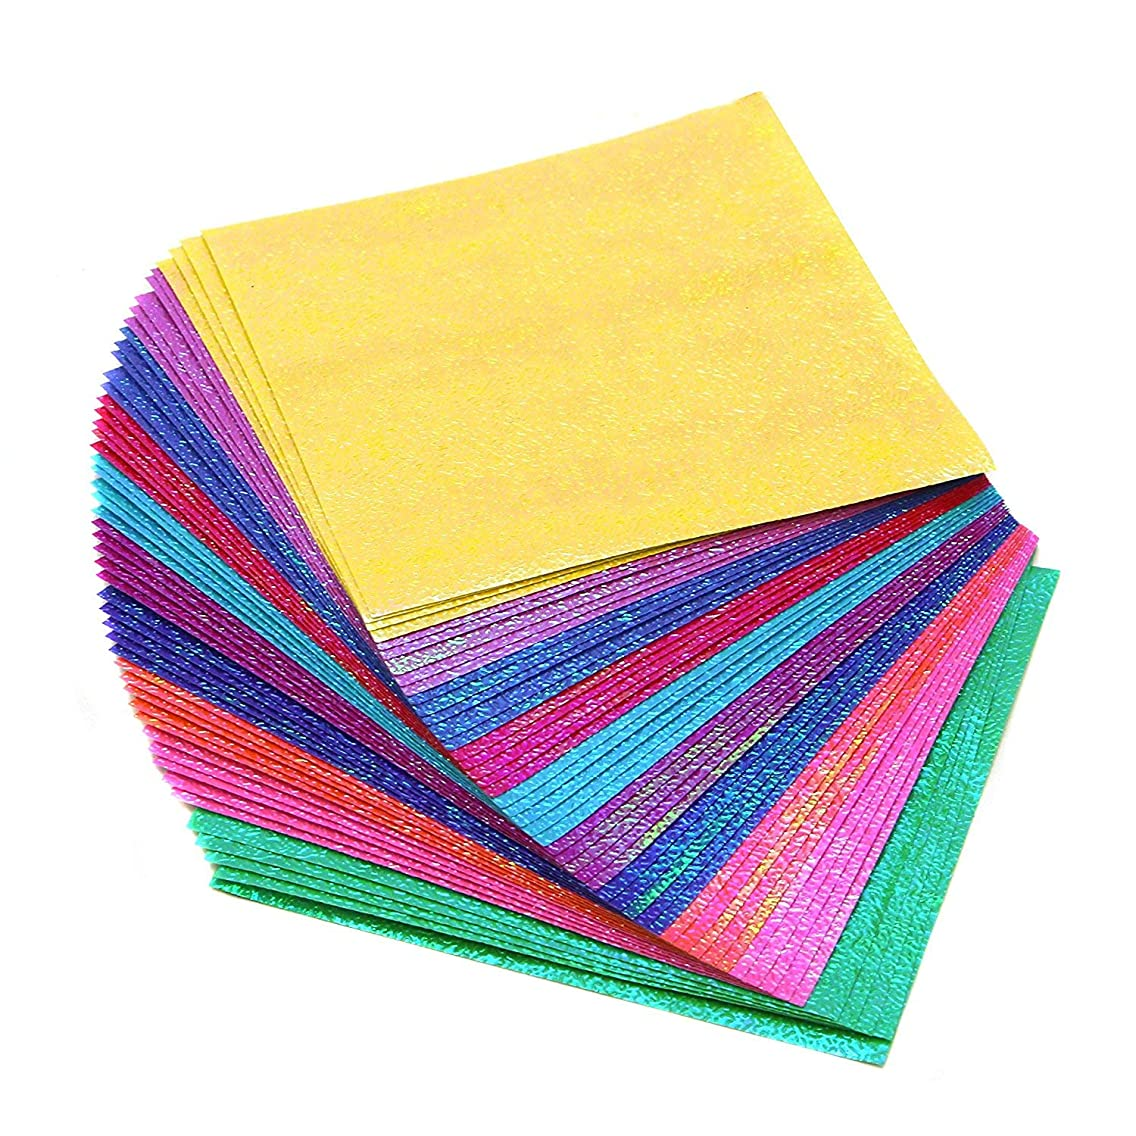 50 Sheets Origami Paper 6